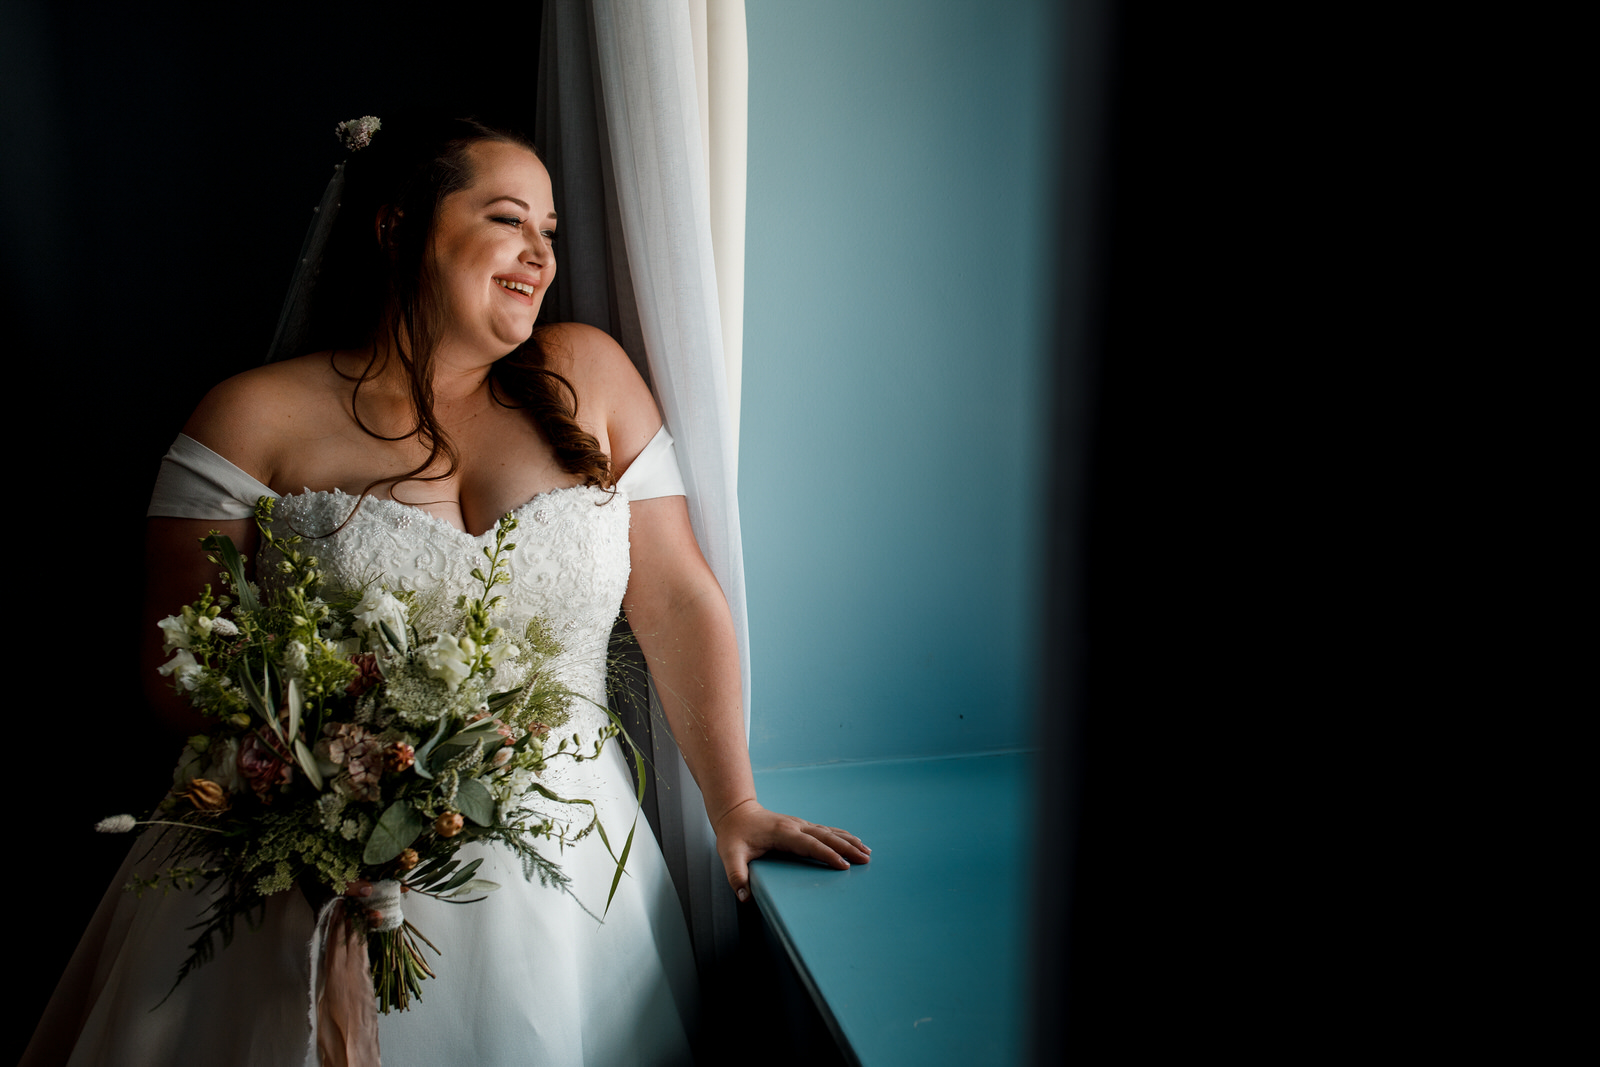 bridal portrait at great house sonning